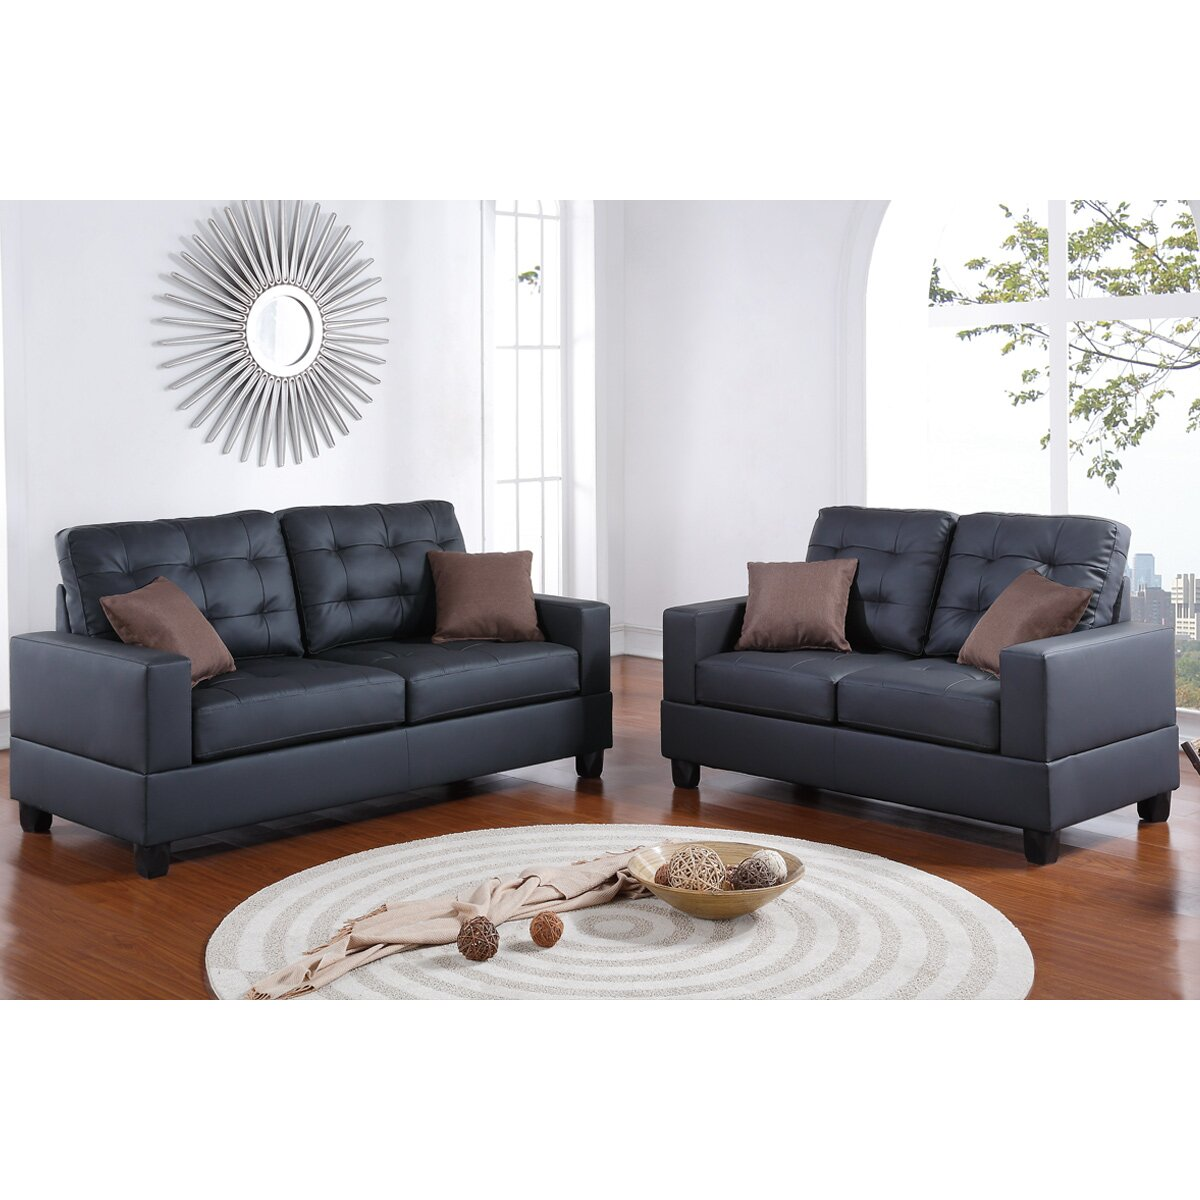 Poundex Bobkona Aria 2 Piece Sofa And Loveseat Set